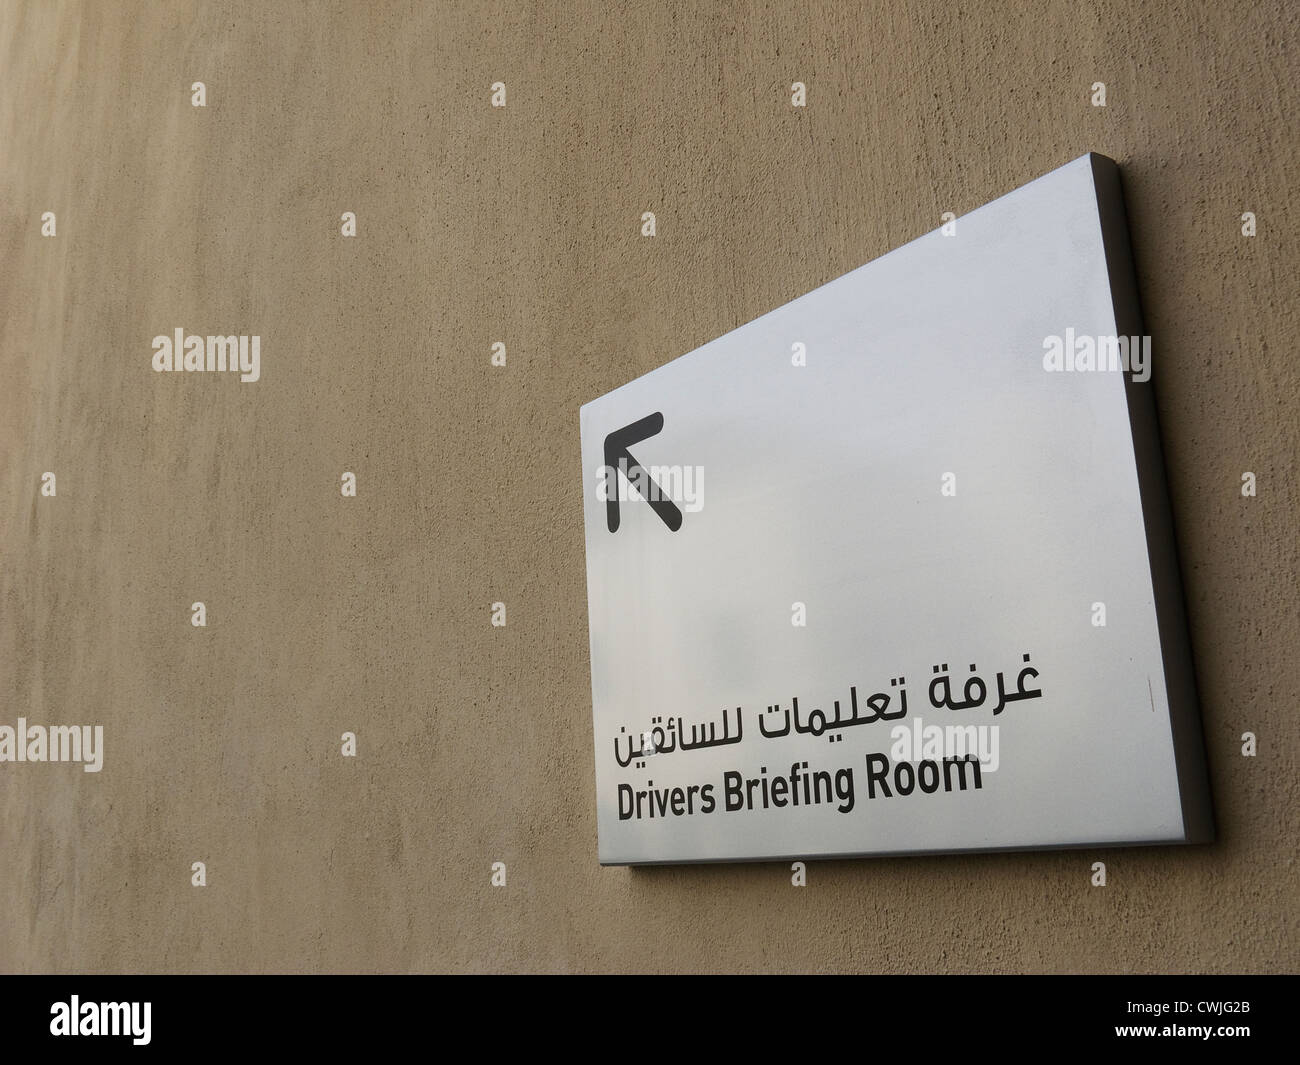 A sign at Yas Circuit Formula 1, Yas Island, Abu Dhabi, pointing the way to the drivers briefing room. - Stock Image